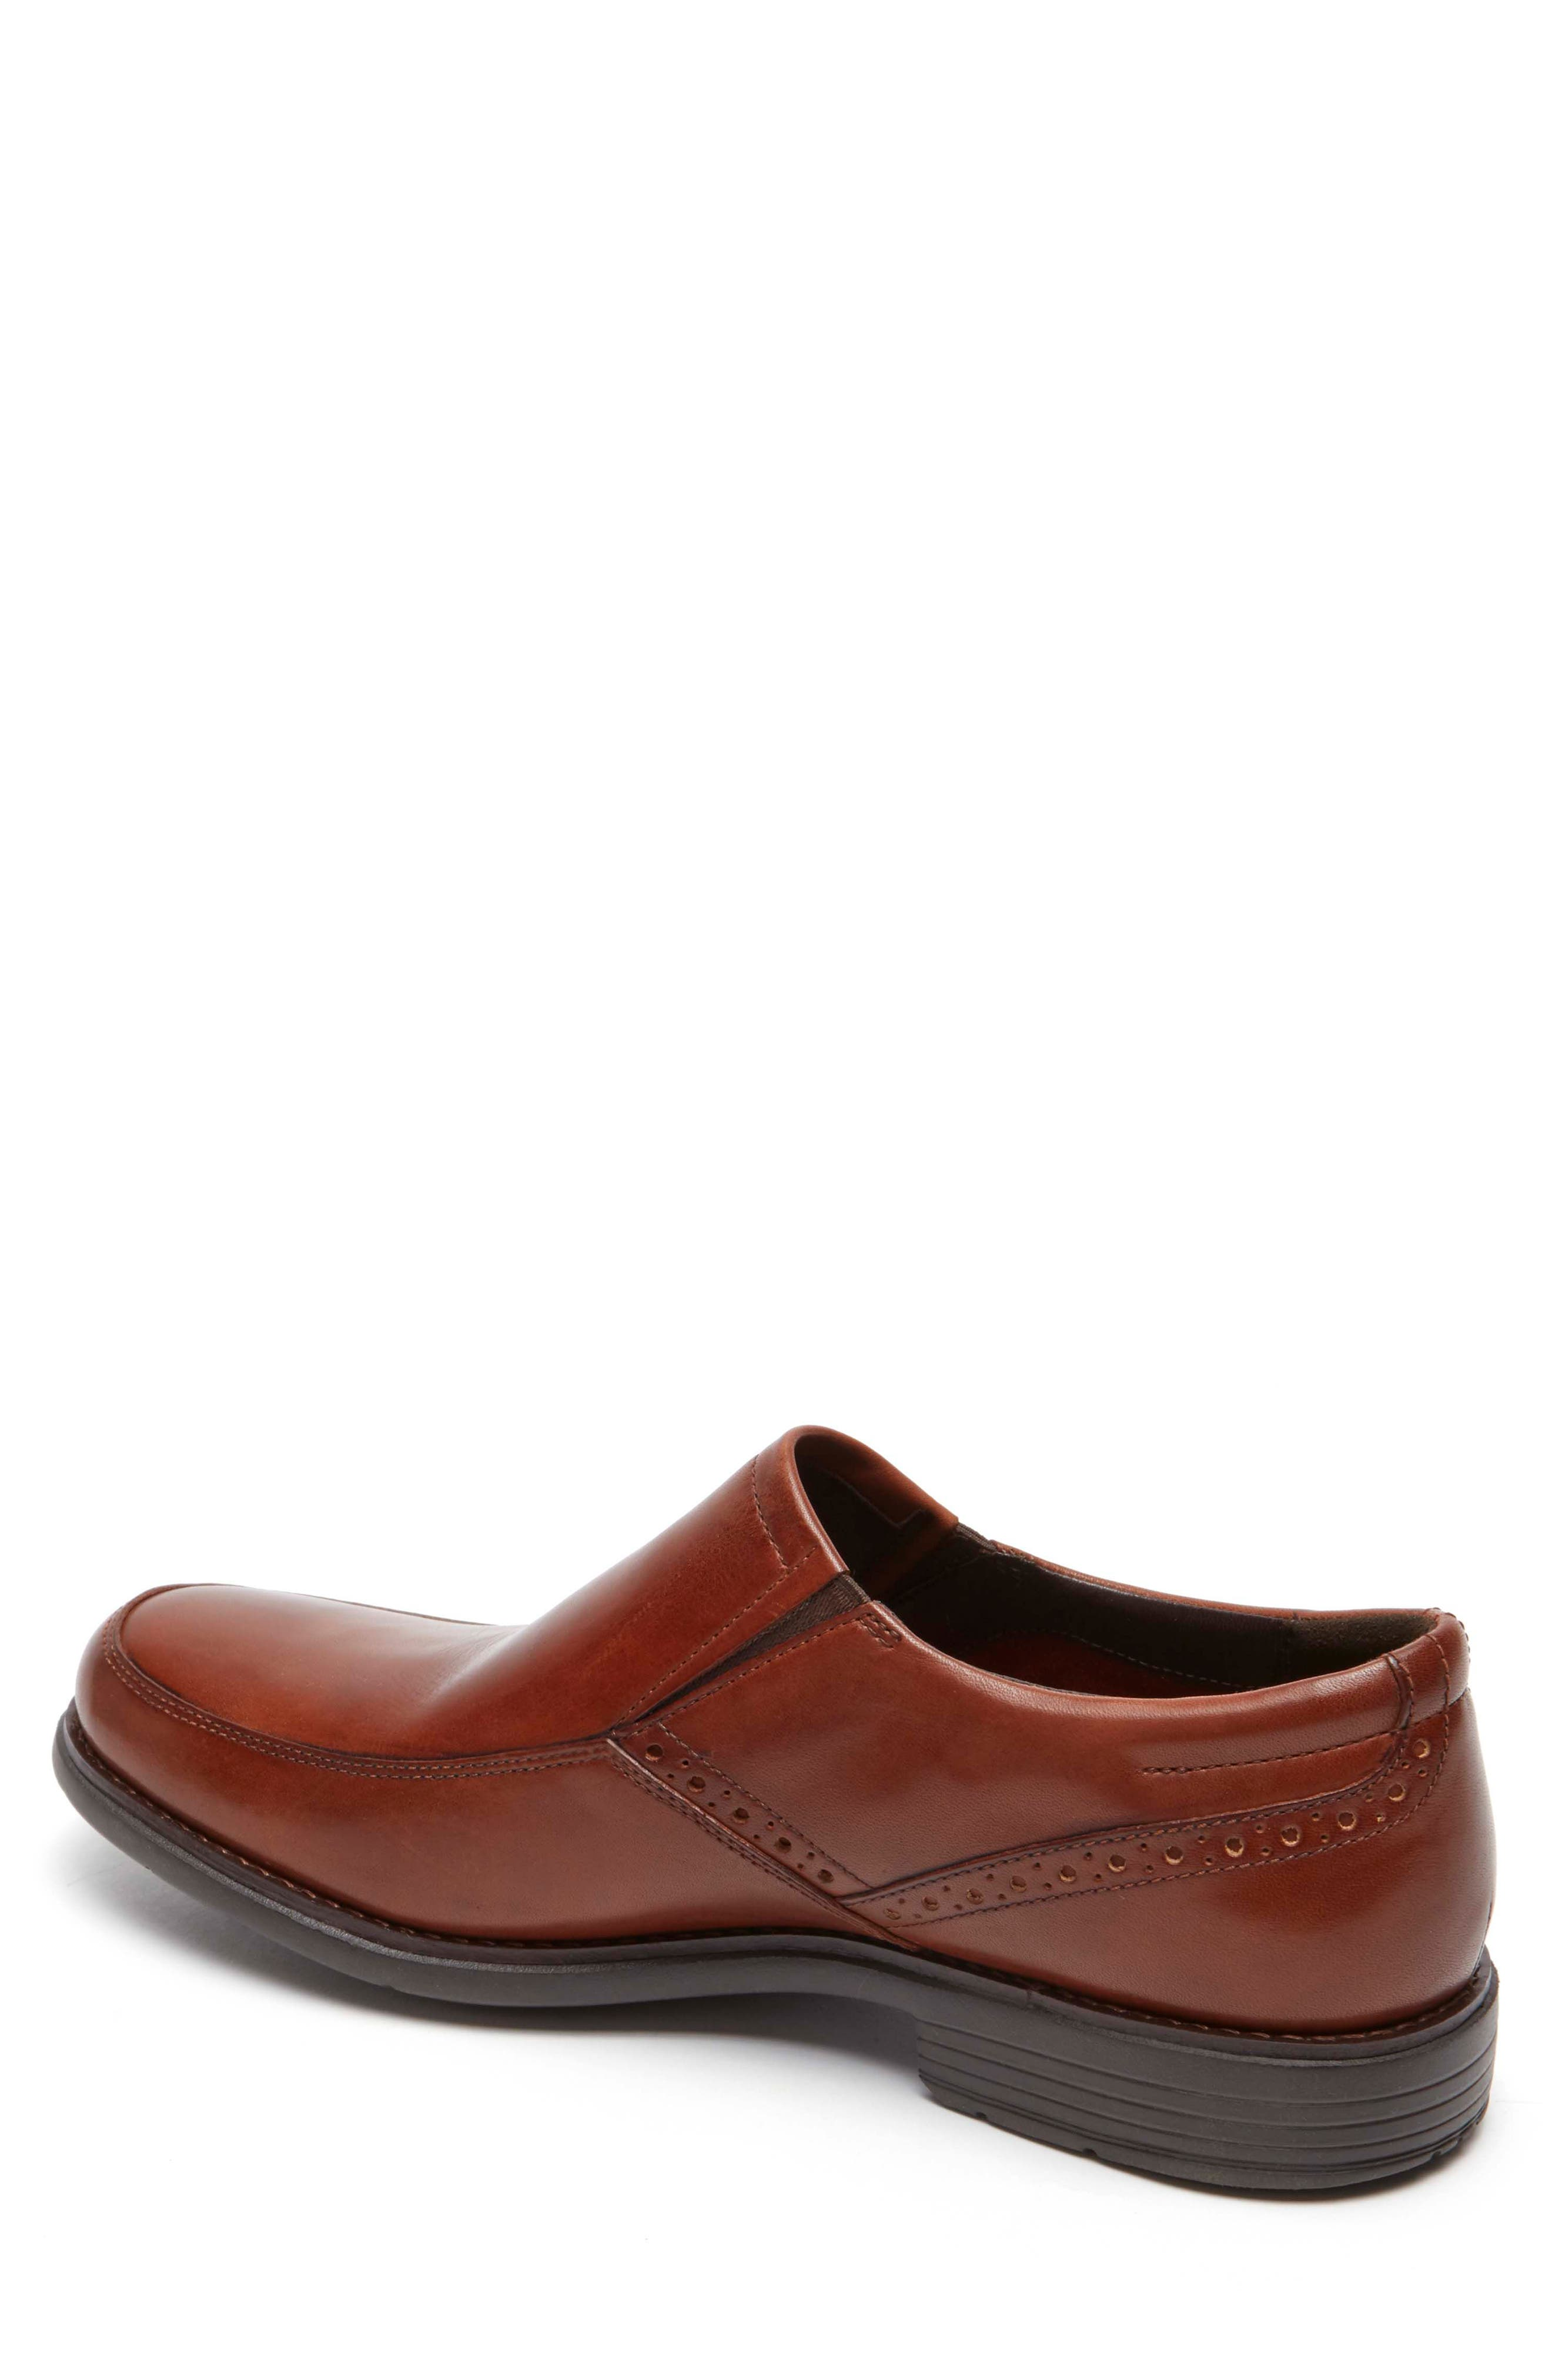 Total Motion Classic Dress Venetian Loafer,                             Alternate thumbnail 2, color,                             TAN LEATHER